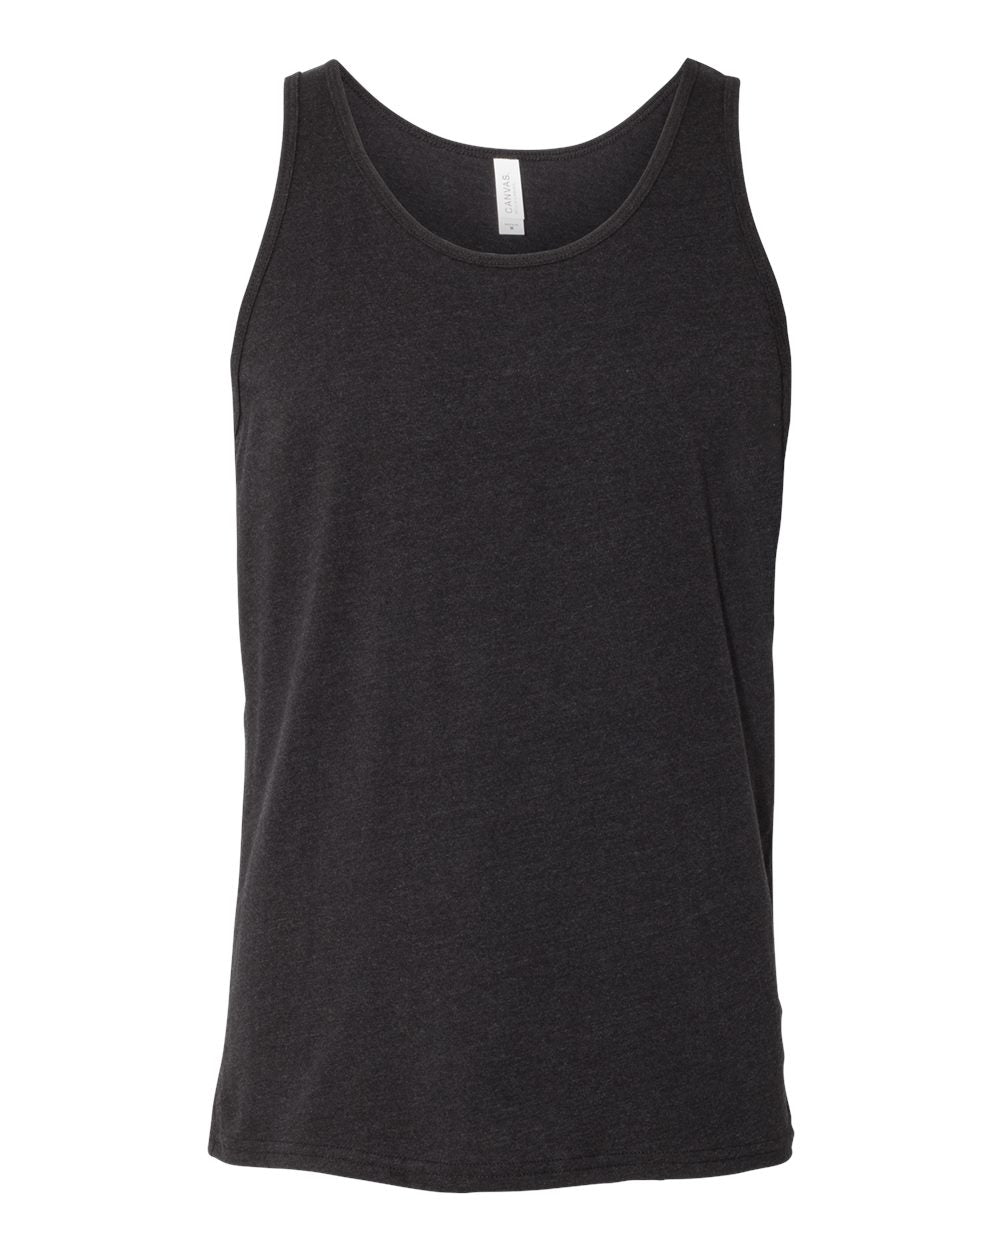 Bella + Canvas - Unisex Jersey Tank - Full Color - 3480